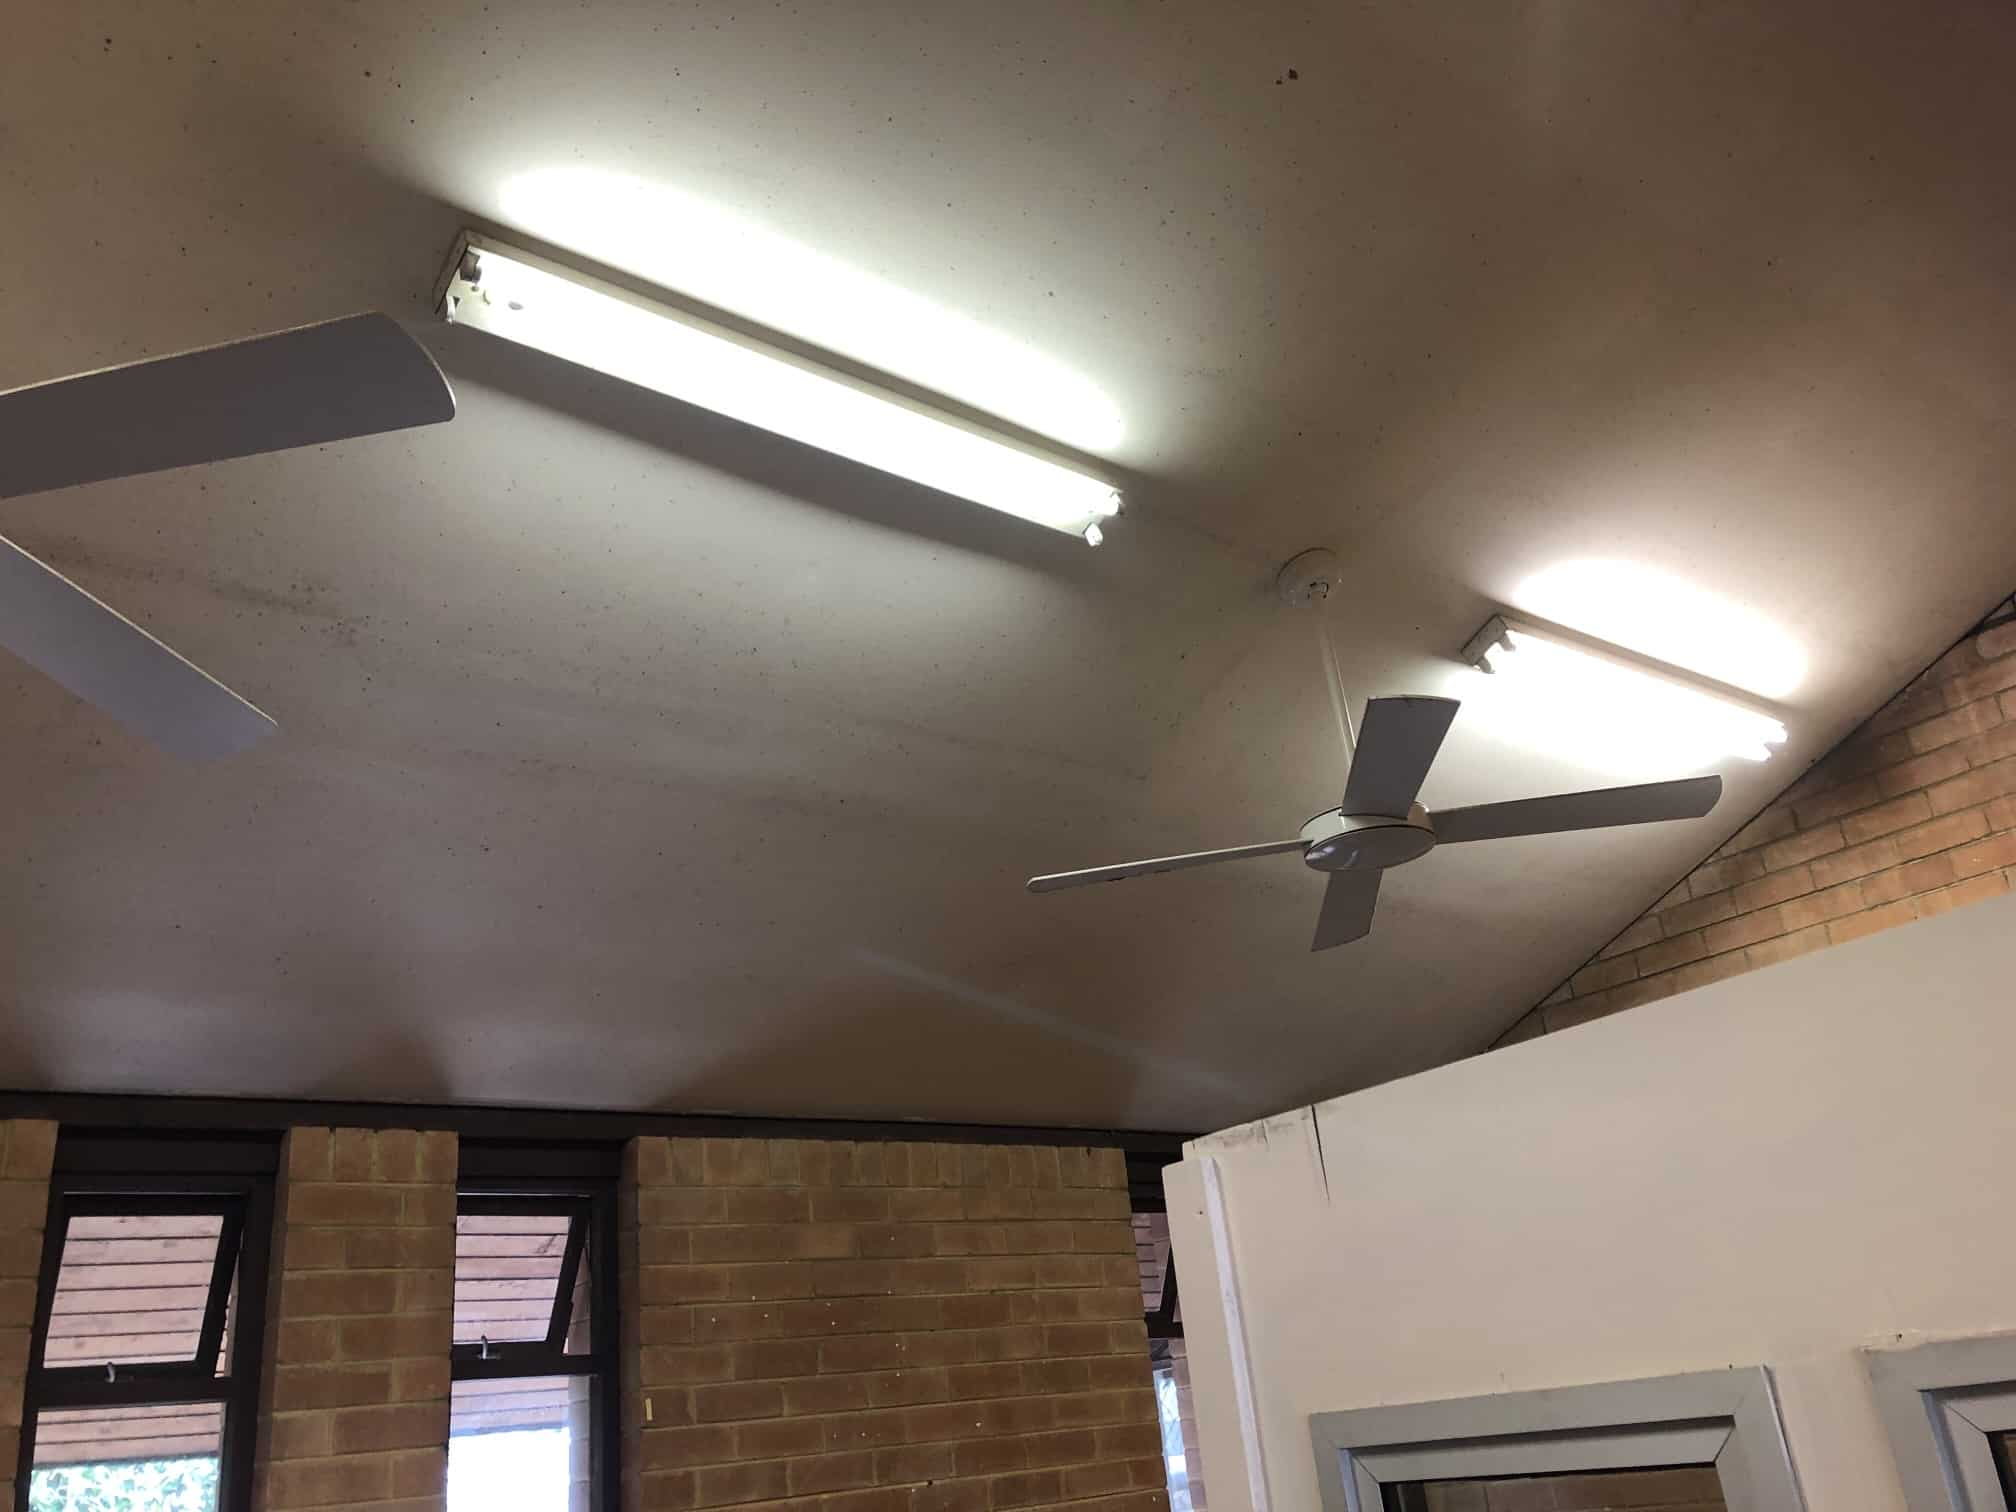 mouldy angled ceiling with fans